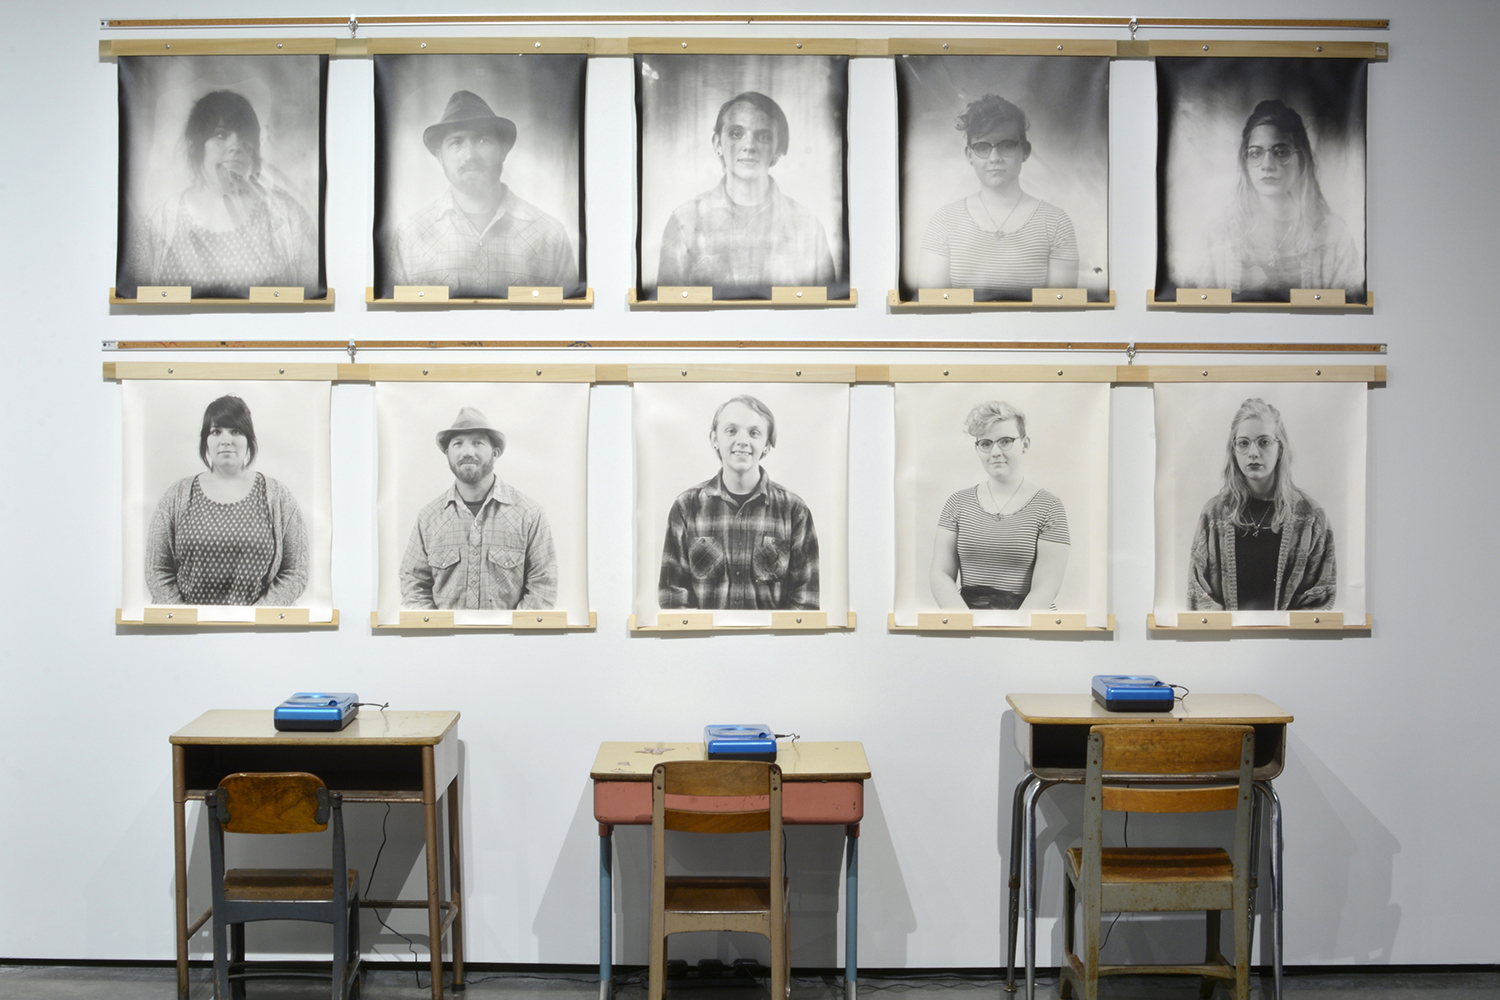 Portraits and Oral History Recordings, Gelatin Silver Print and School Desks & Chairs